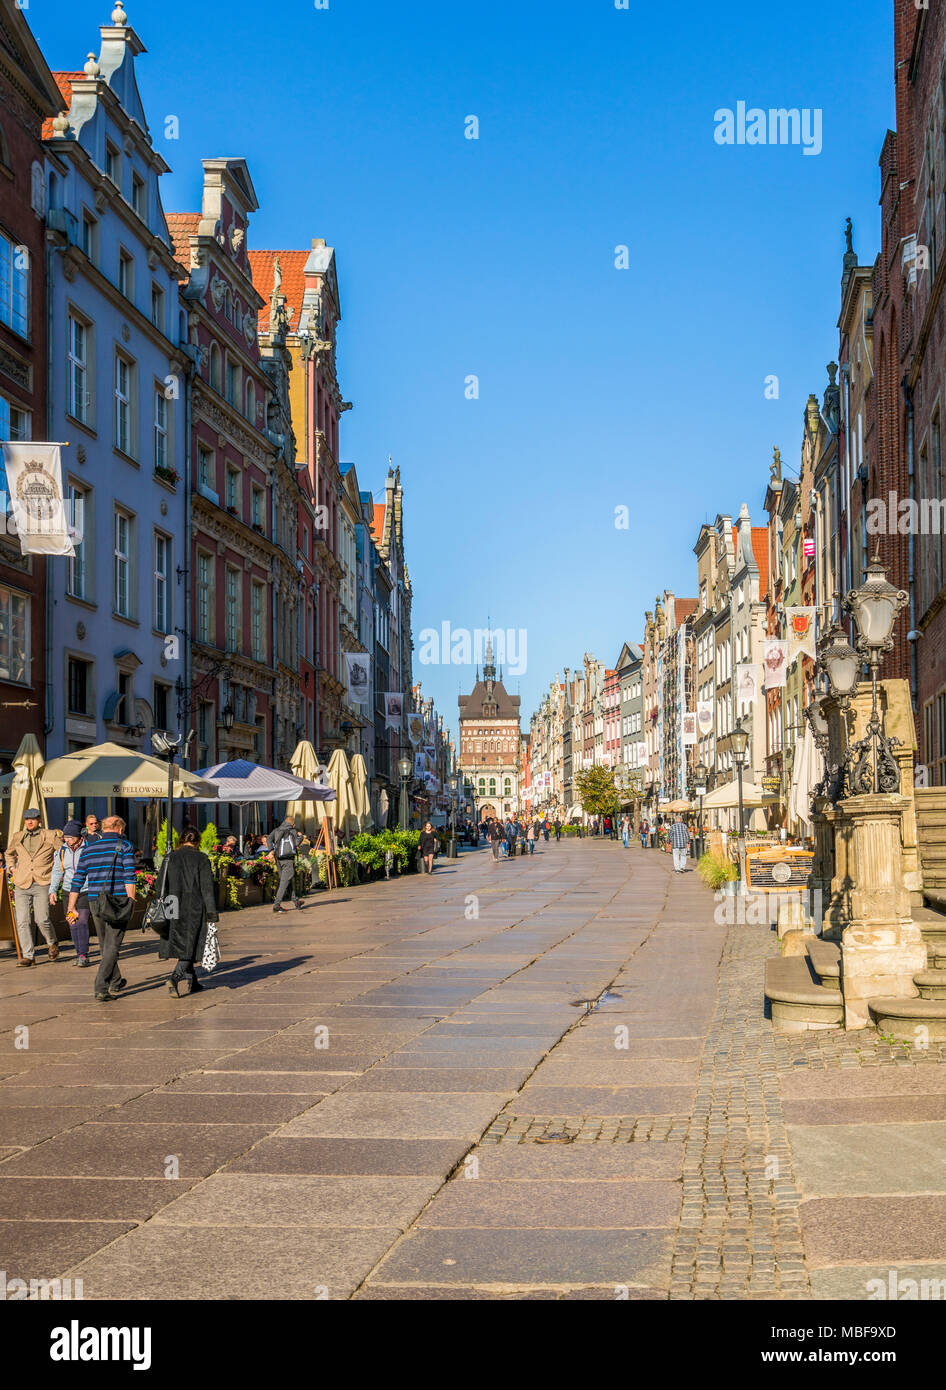 Tourists on Long Lane in the city centre of Gdansk, Poland, Europe - Stock Image